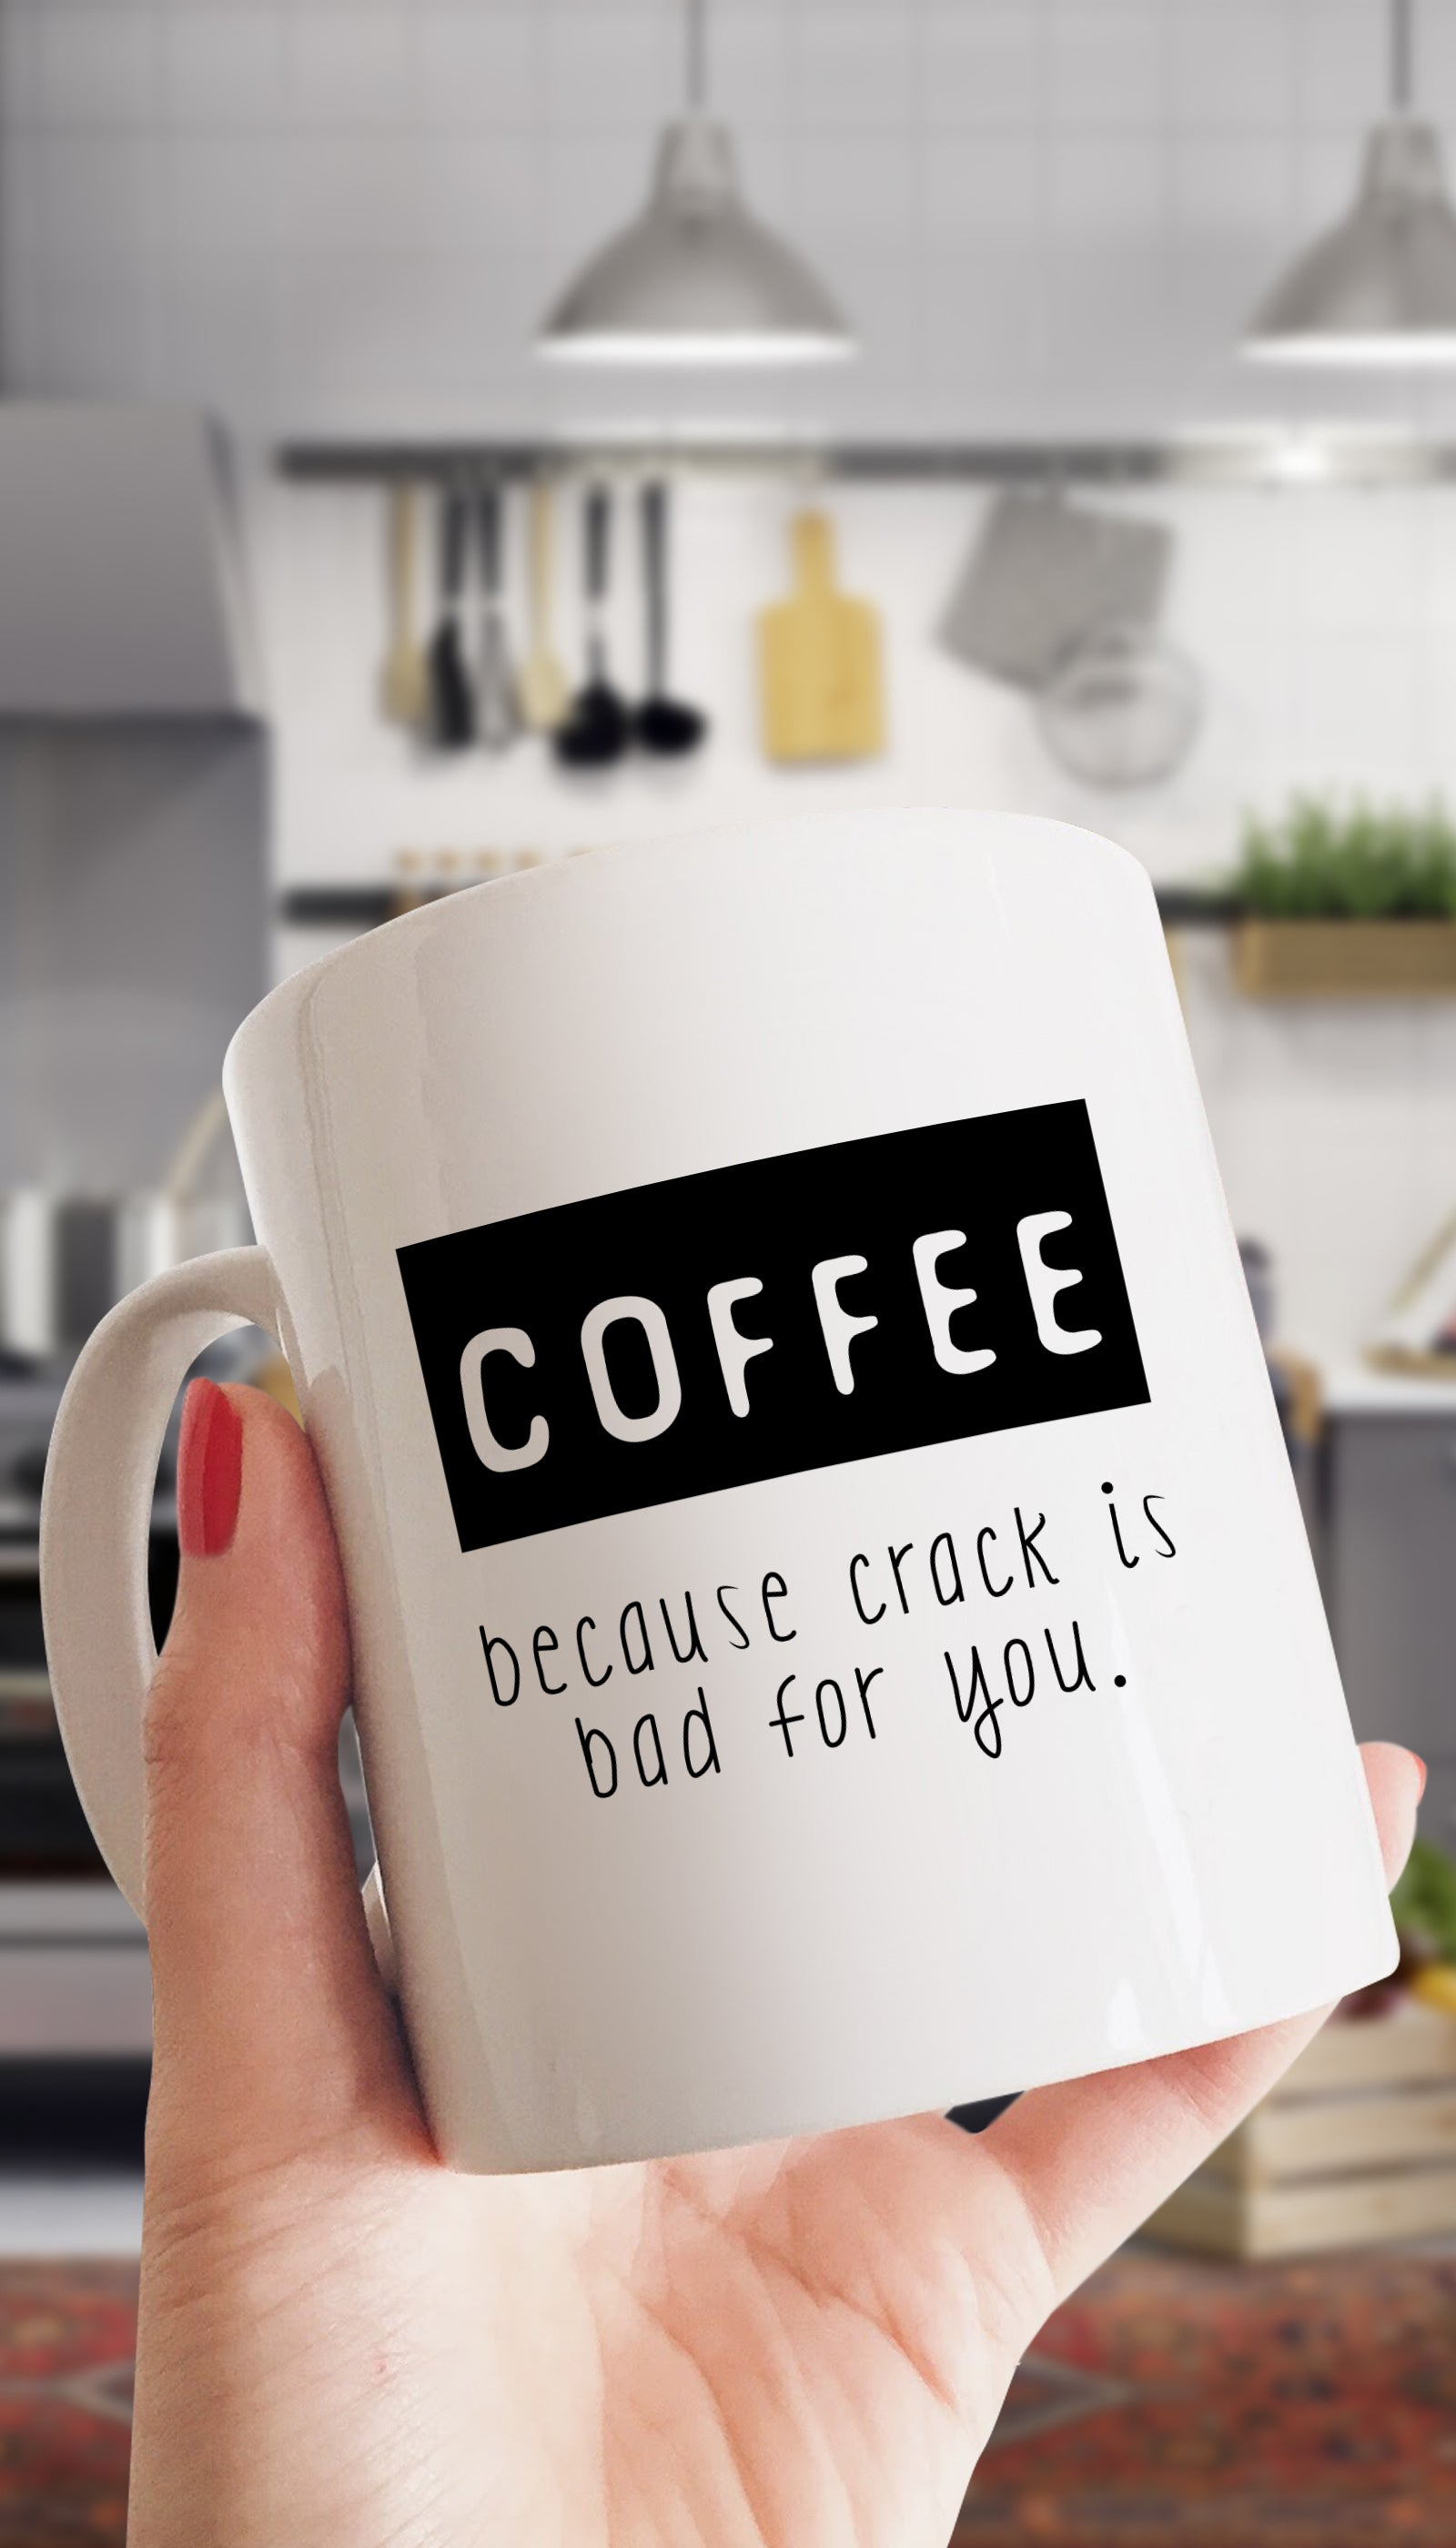 Coffee Because Crack Is Bad For You Funny & Clever Office Coffee Mug | Sarcastic ME